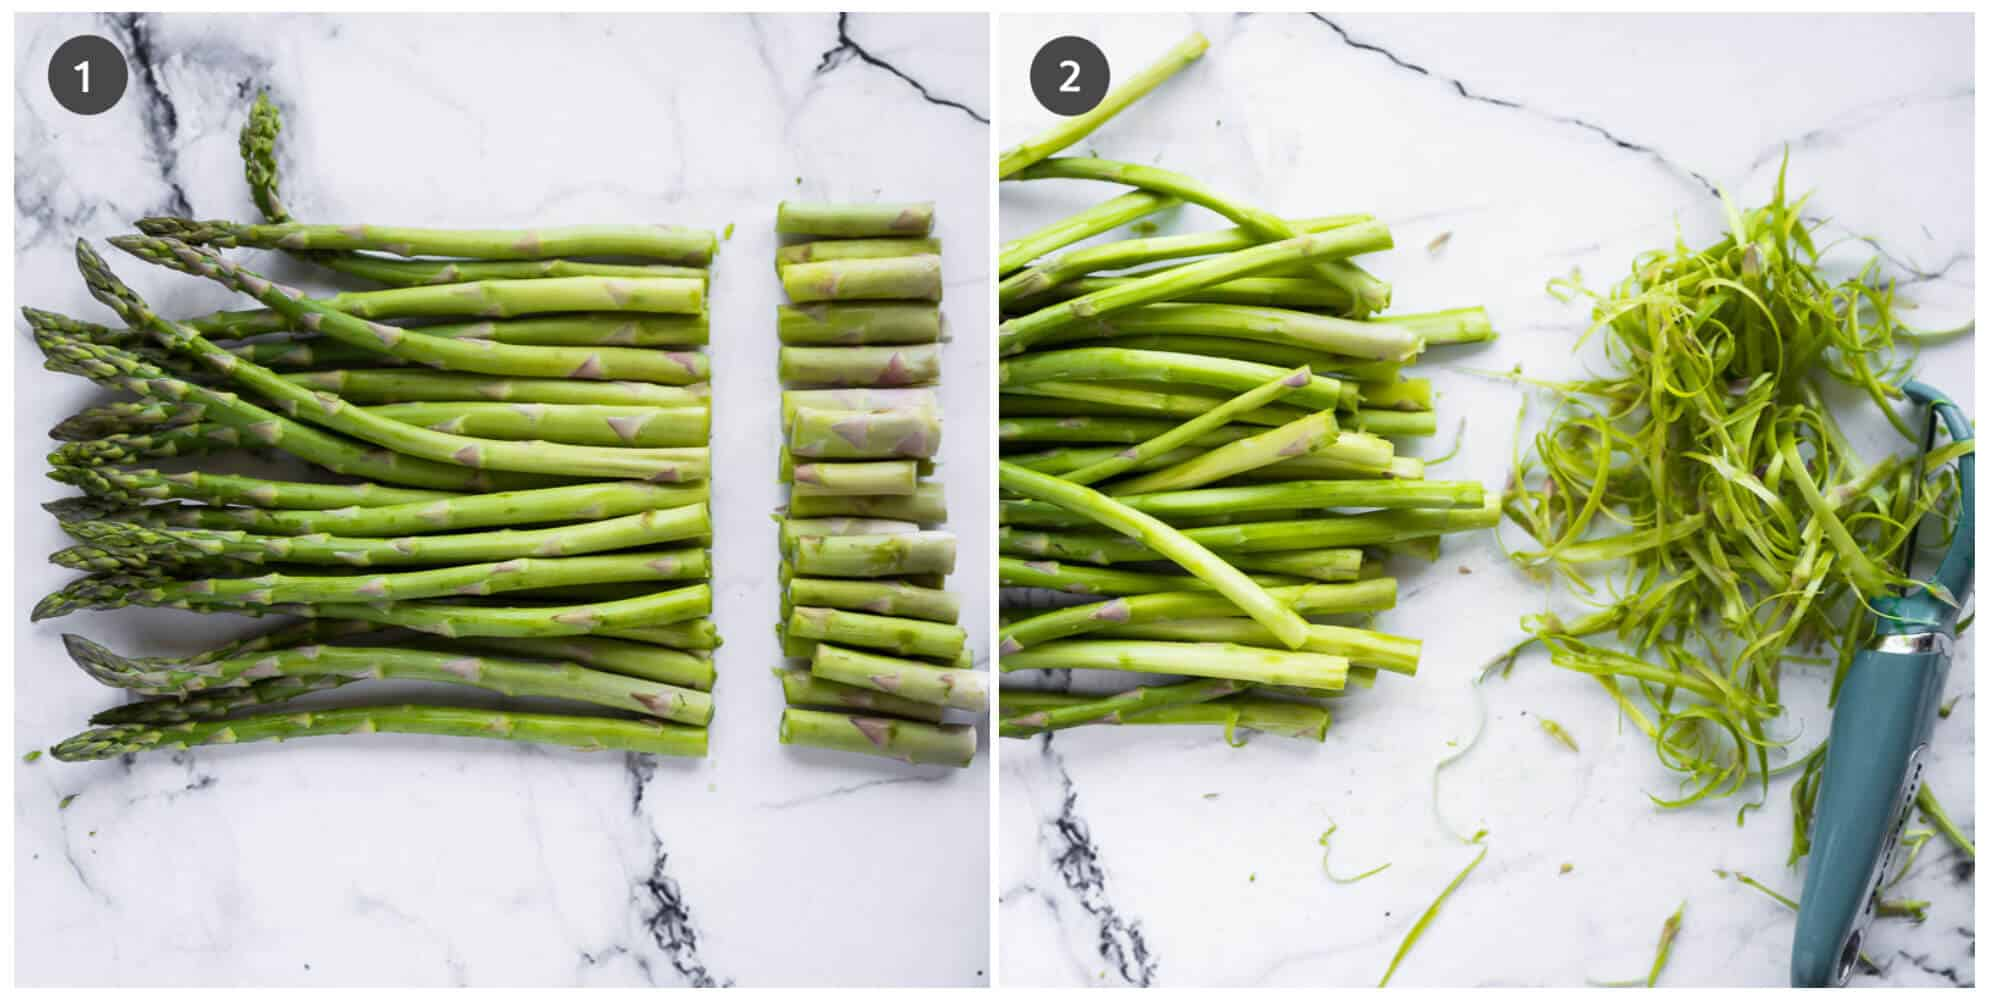 collage of 2 photos showing how to prepare asparagus for cookimg